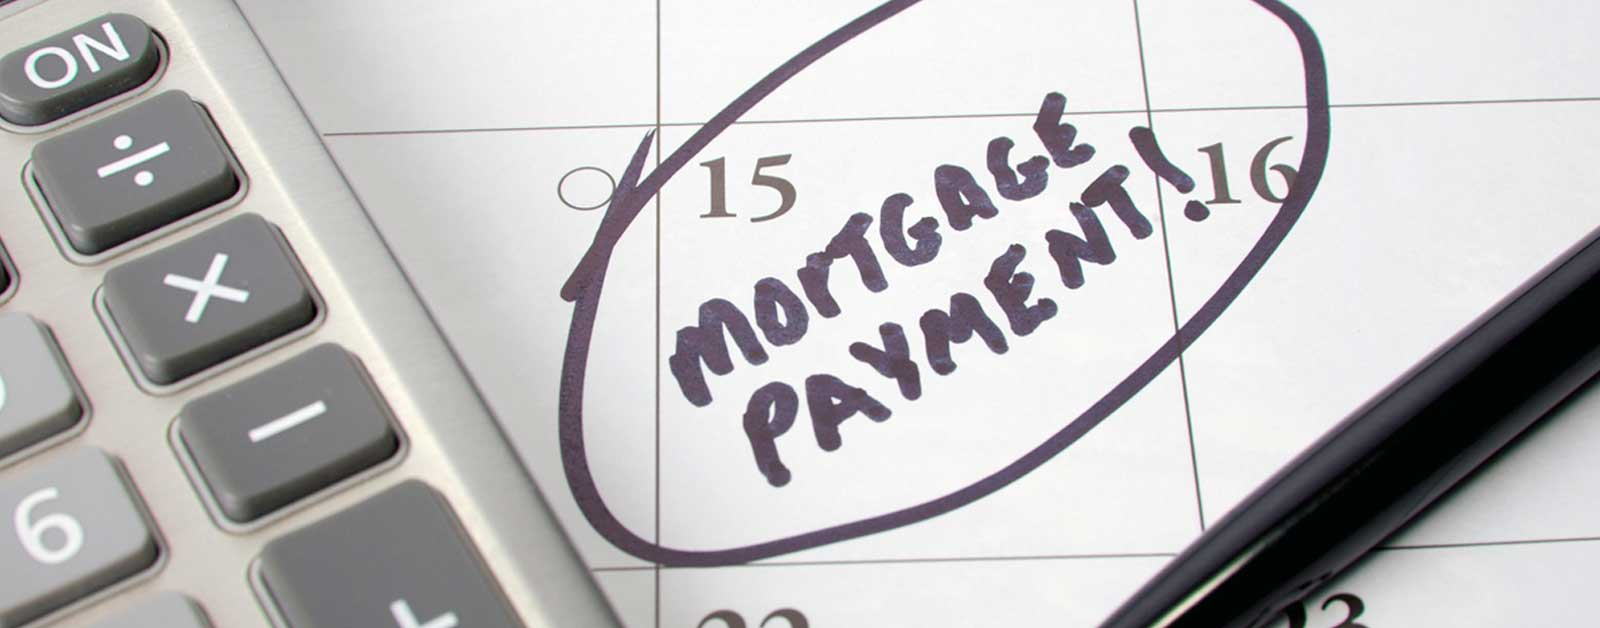 What combination of factors would result in the lowest monthly mortgage payment?